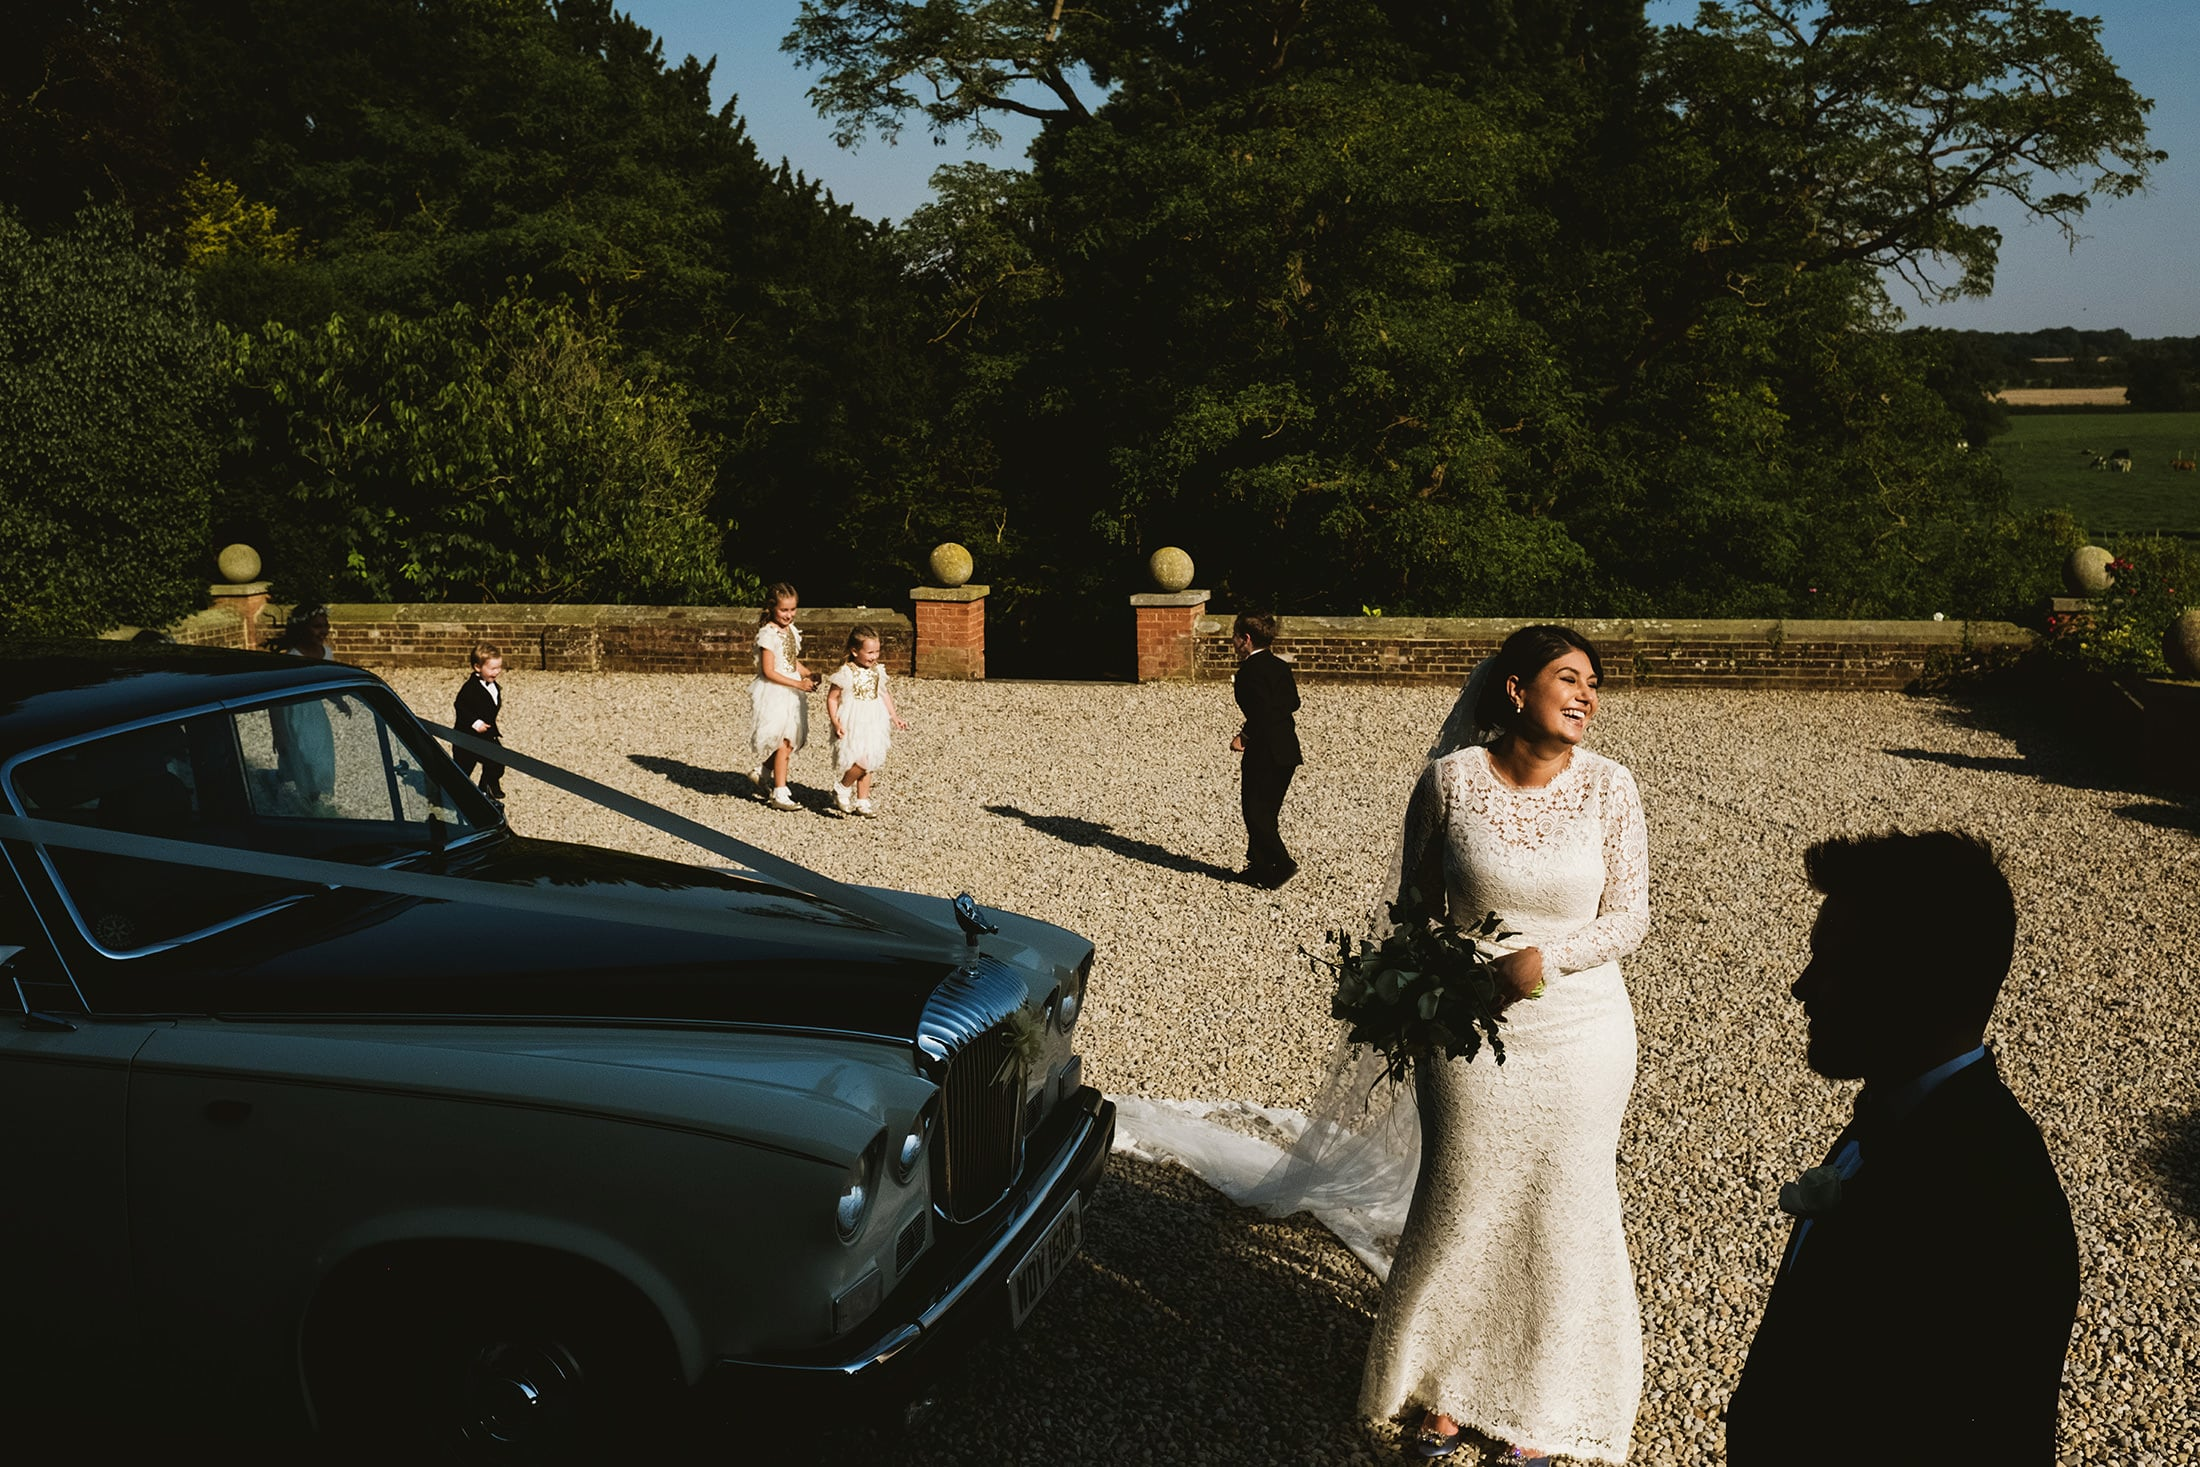 bride arrives at reception, groom silhouetted looks on